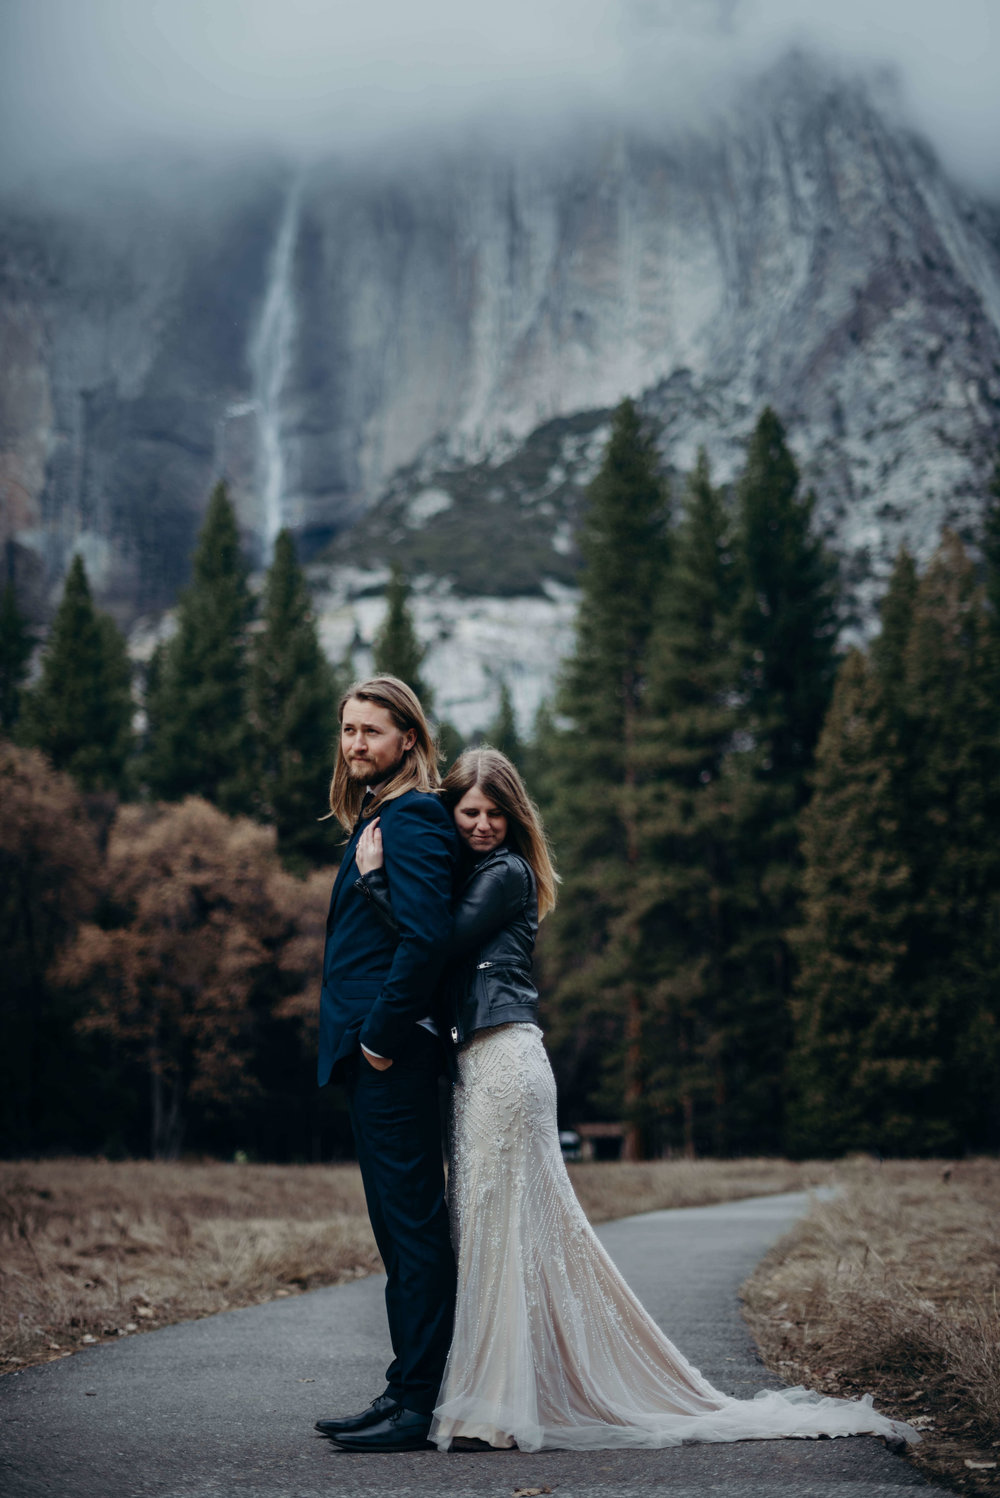 Adventure-Elopement-Yosemite-Valley-2.jpg